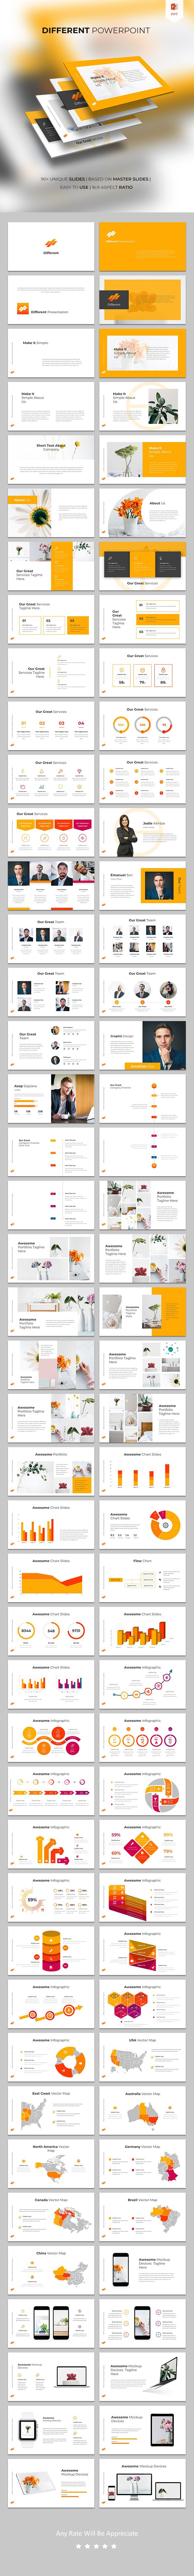 Different Powerpoint Template Creative Powerpoint Templates